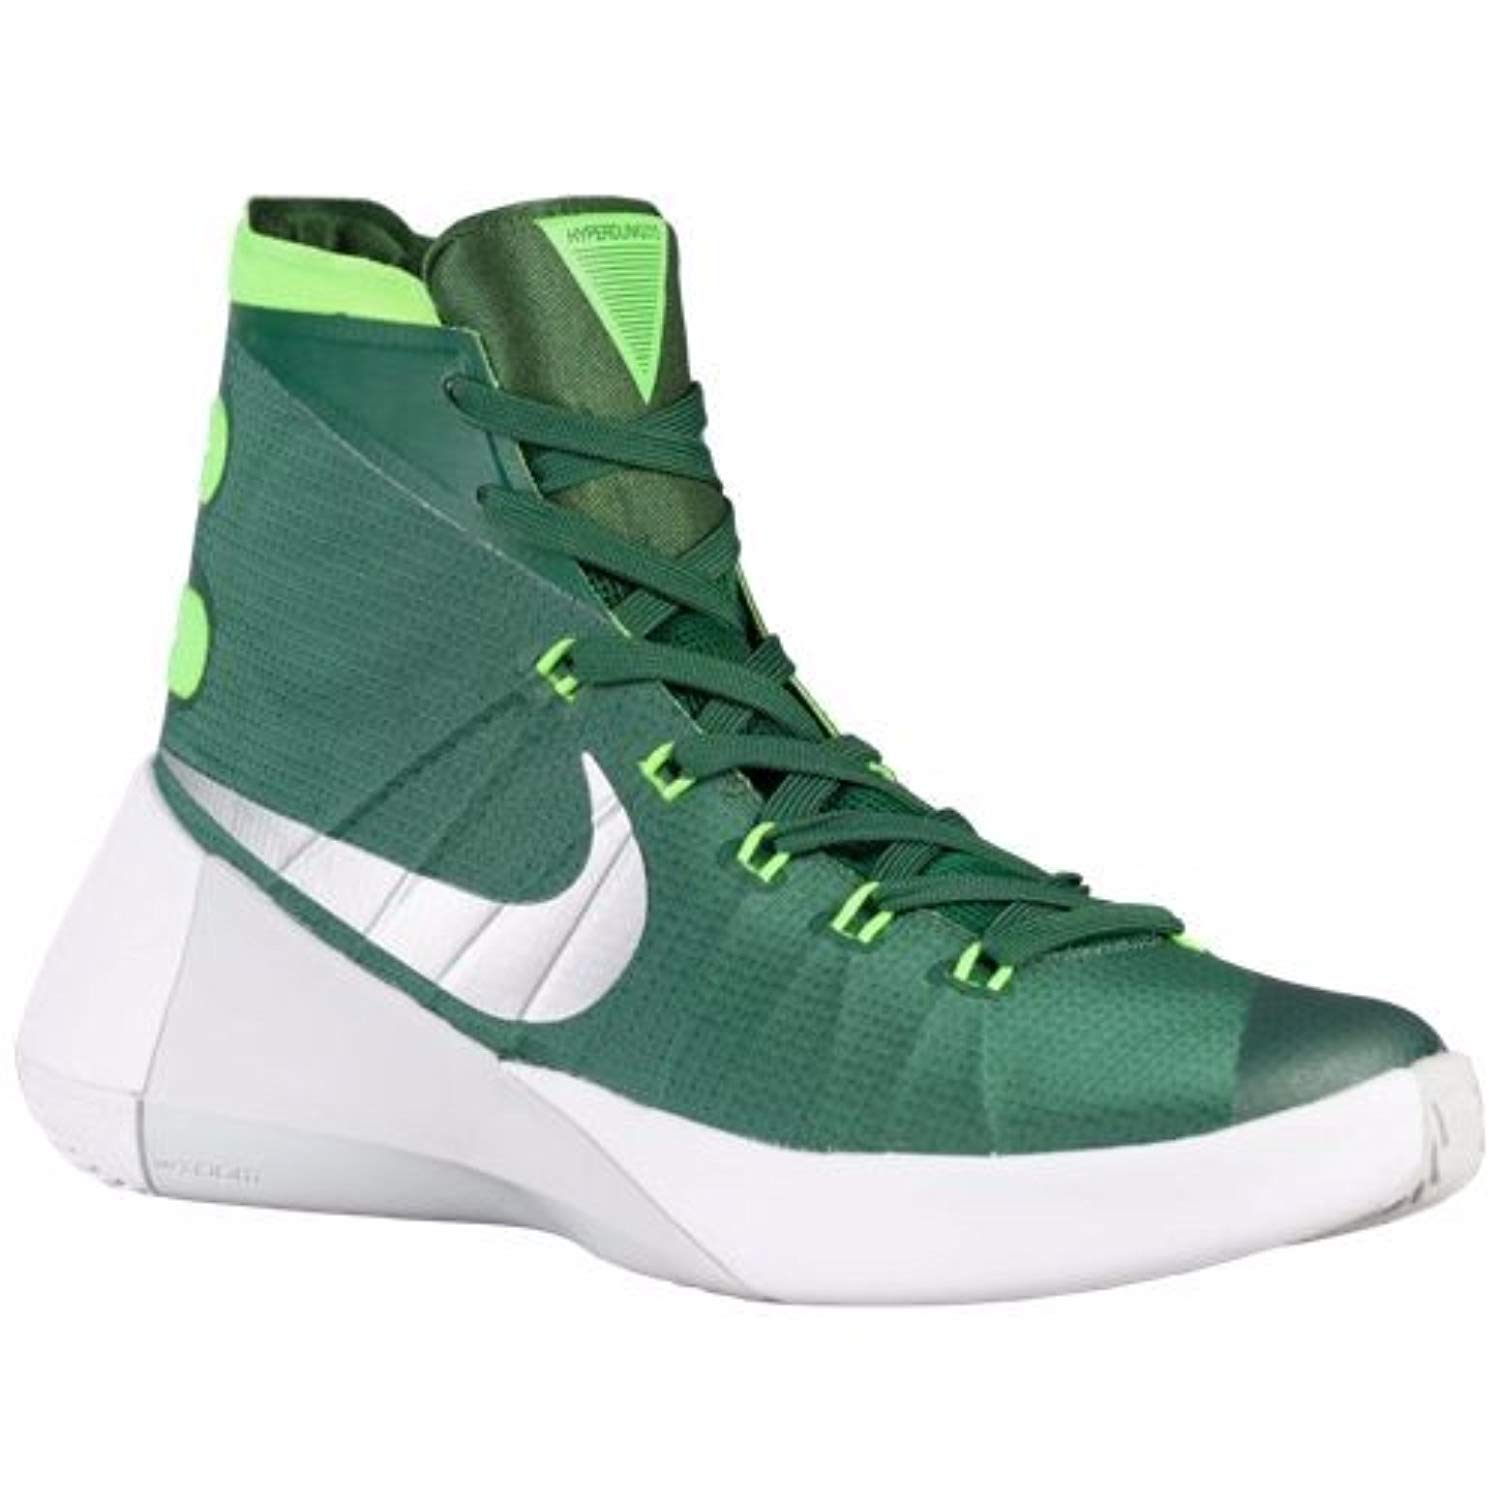 pretty nice 7ce24 8b544 Amazon.com   Nike Women s Hyperdunk 2015 TB Basketball Shoe (5.5 B(M) US,  Gorge Green Metallic Silver Electric Green)   Basketball